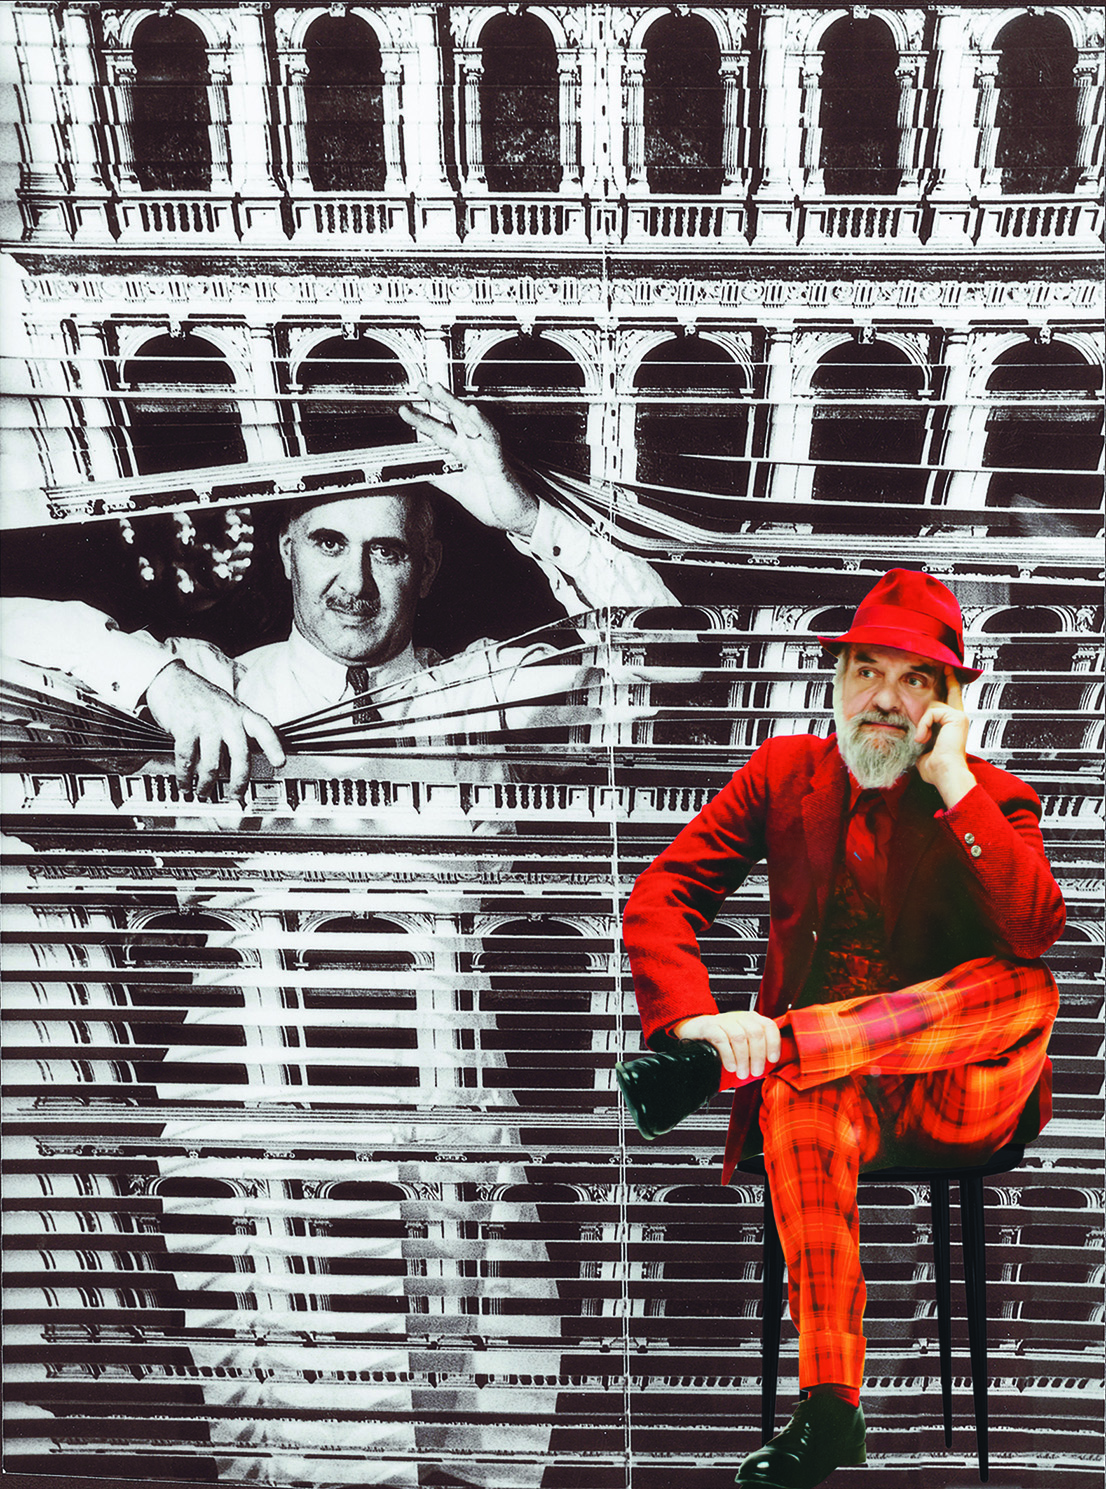 Barnaba Fornasetti. Photo: Giovanni Gastel and Ugo Mulas.